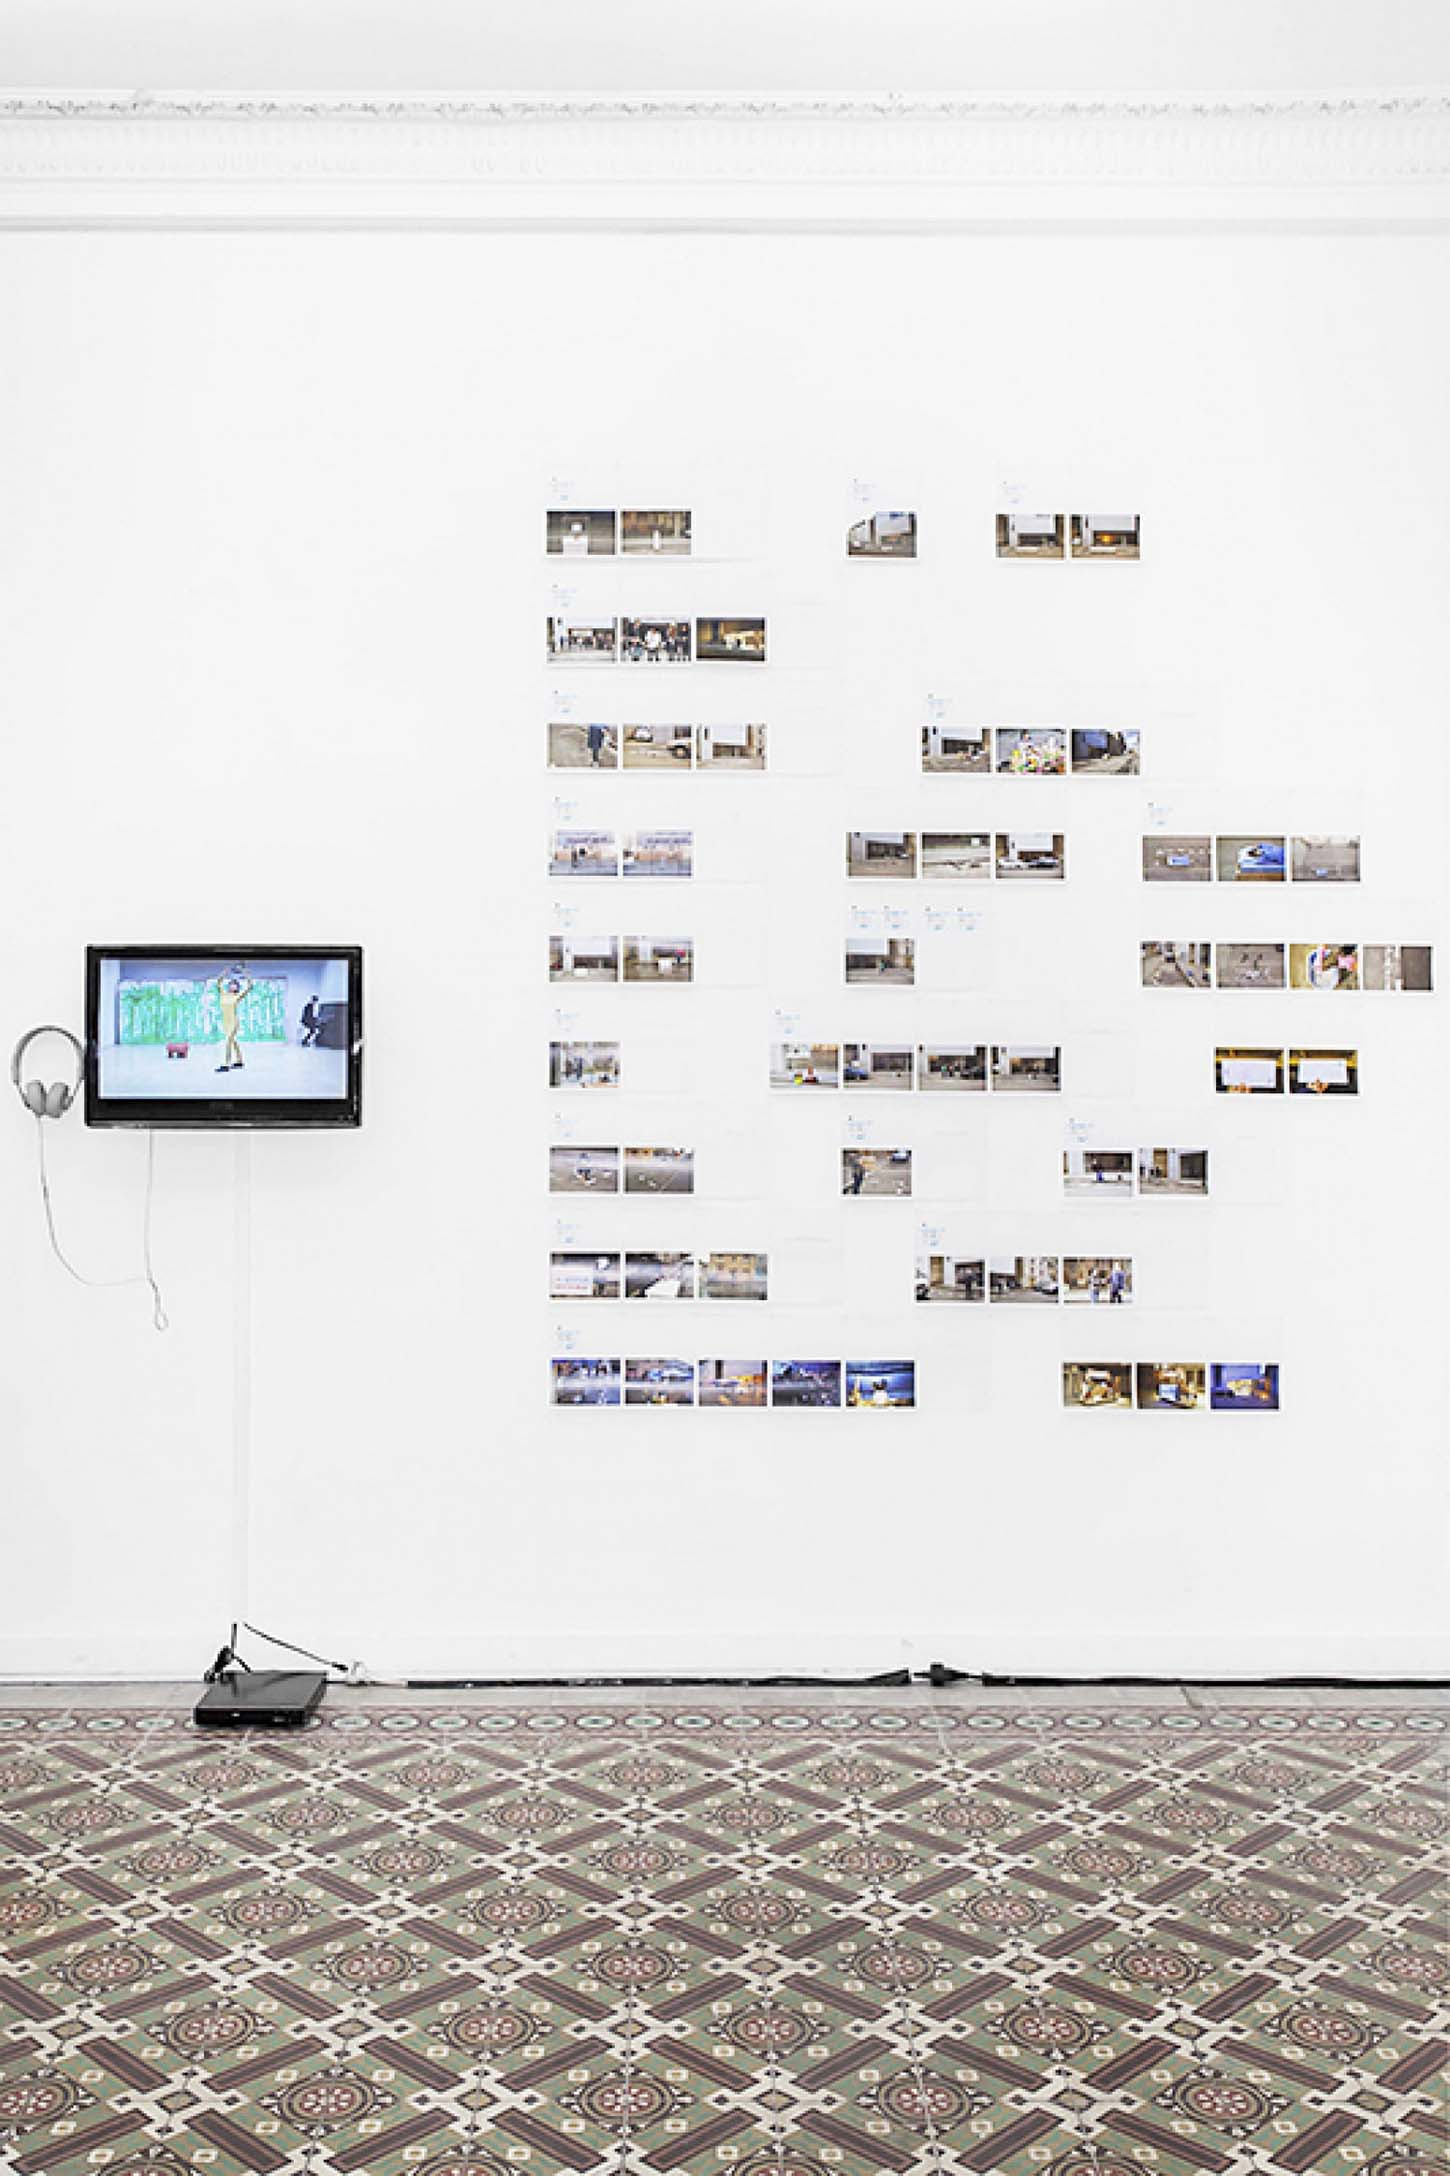 Qingmei Yao, One Hour Occupy Parking Art,Installation: 61 photos 10cmx15cm(24 actionssur la stationnement: 7 March - 30 March 2015 )